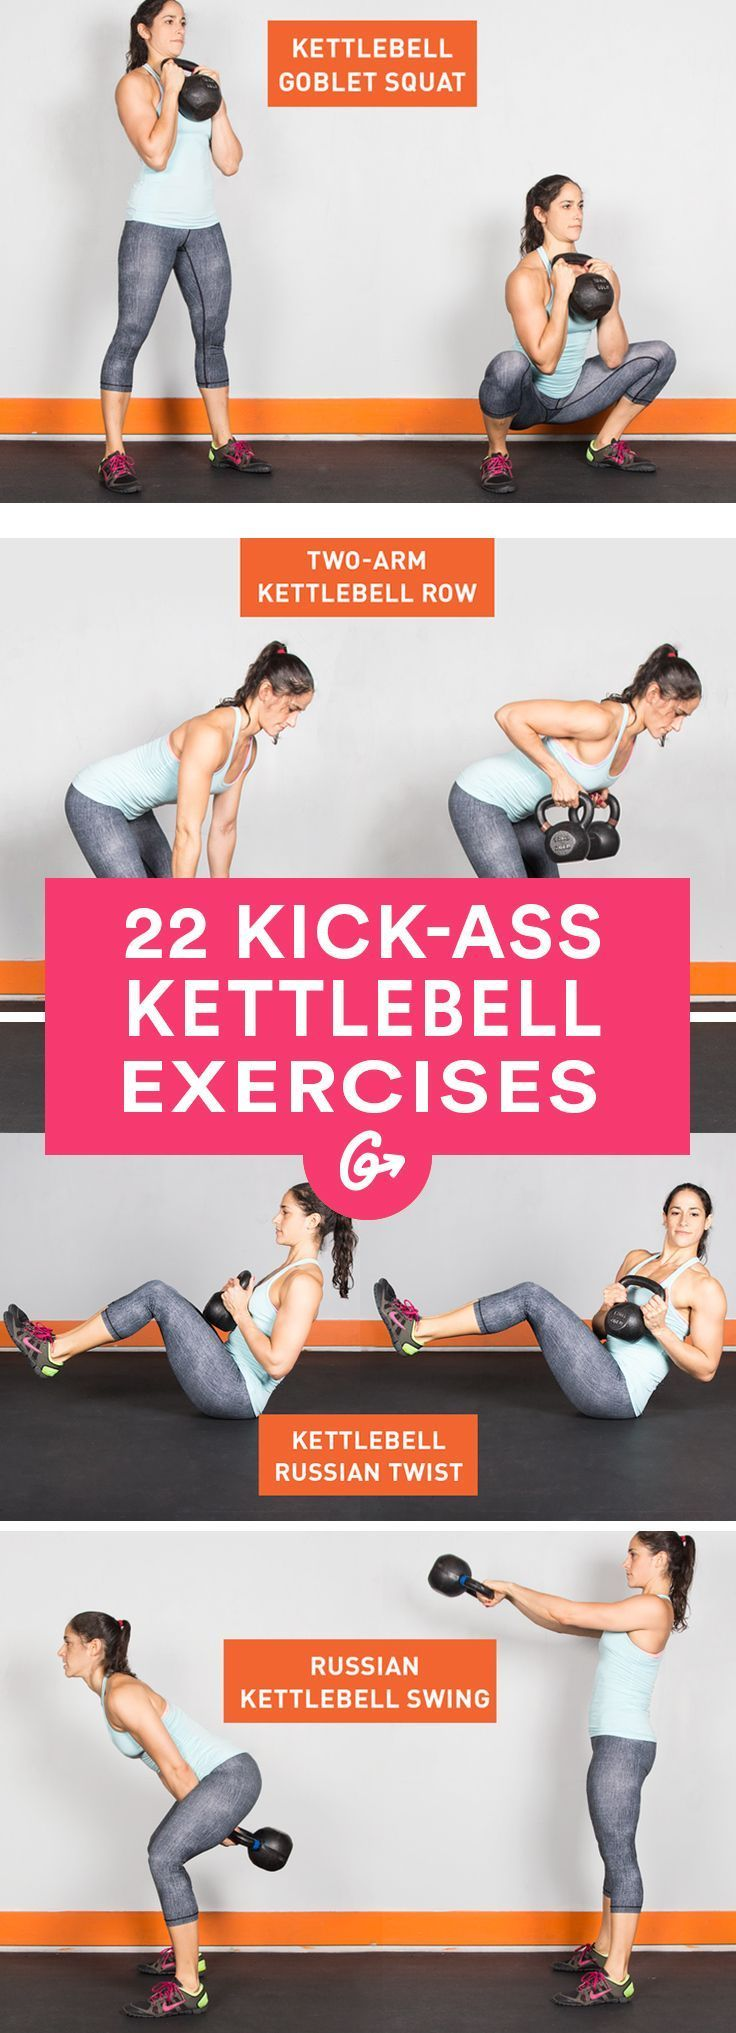 Workouts Drop The Dumbbells Here Are 22 Kettlebell Exercises On Pinterest Circuit Workout And